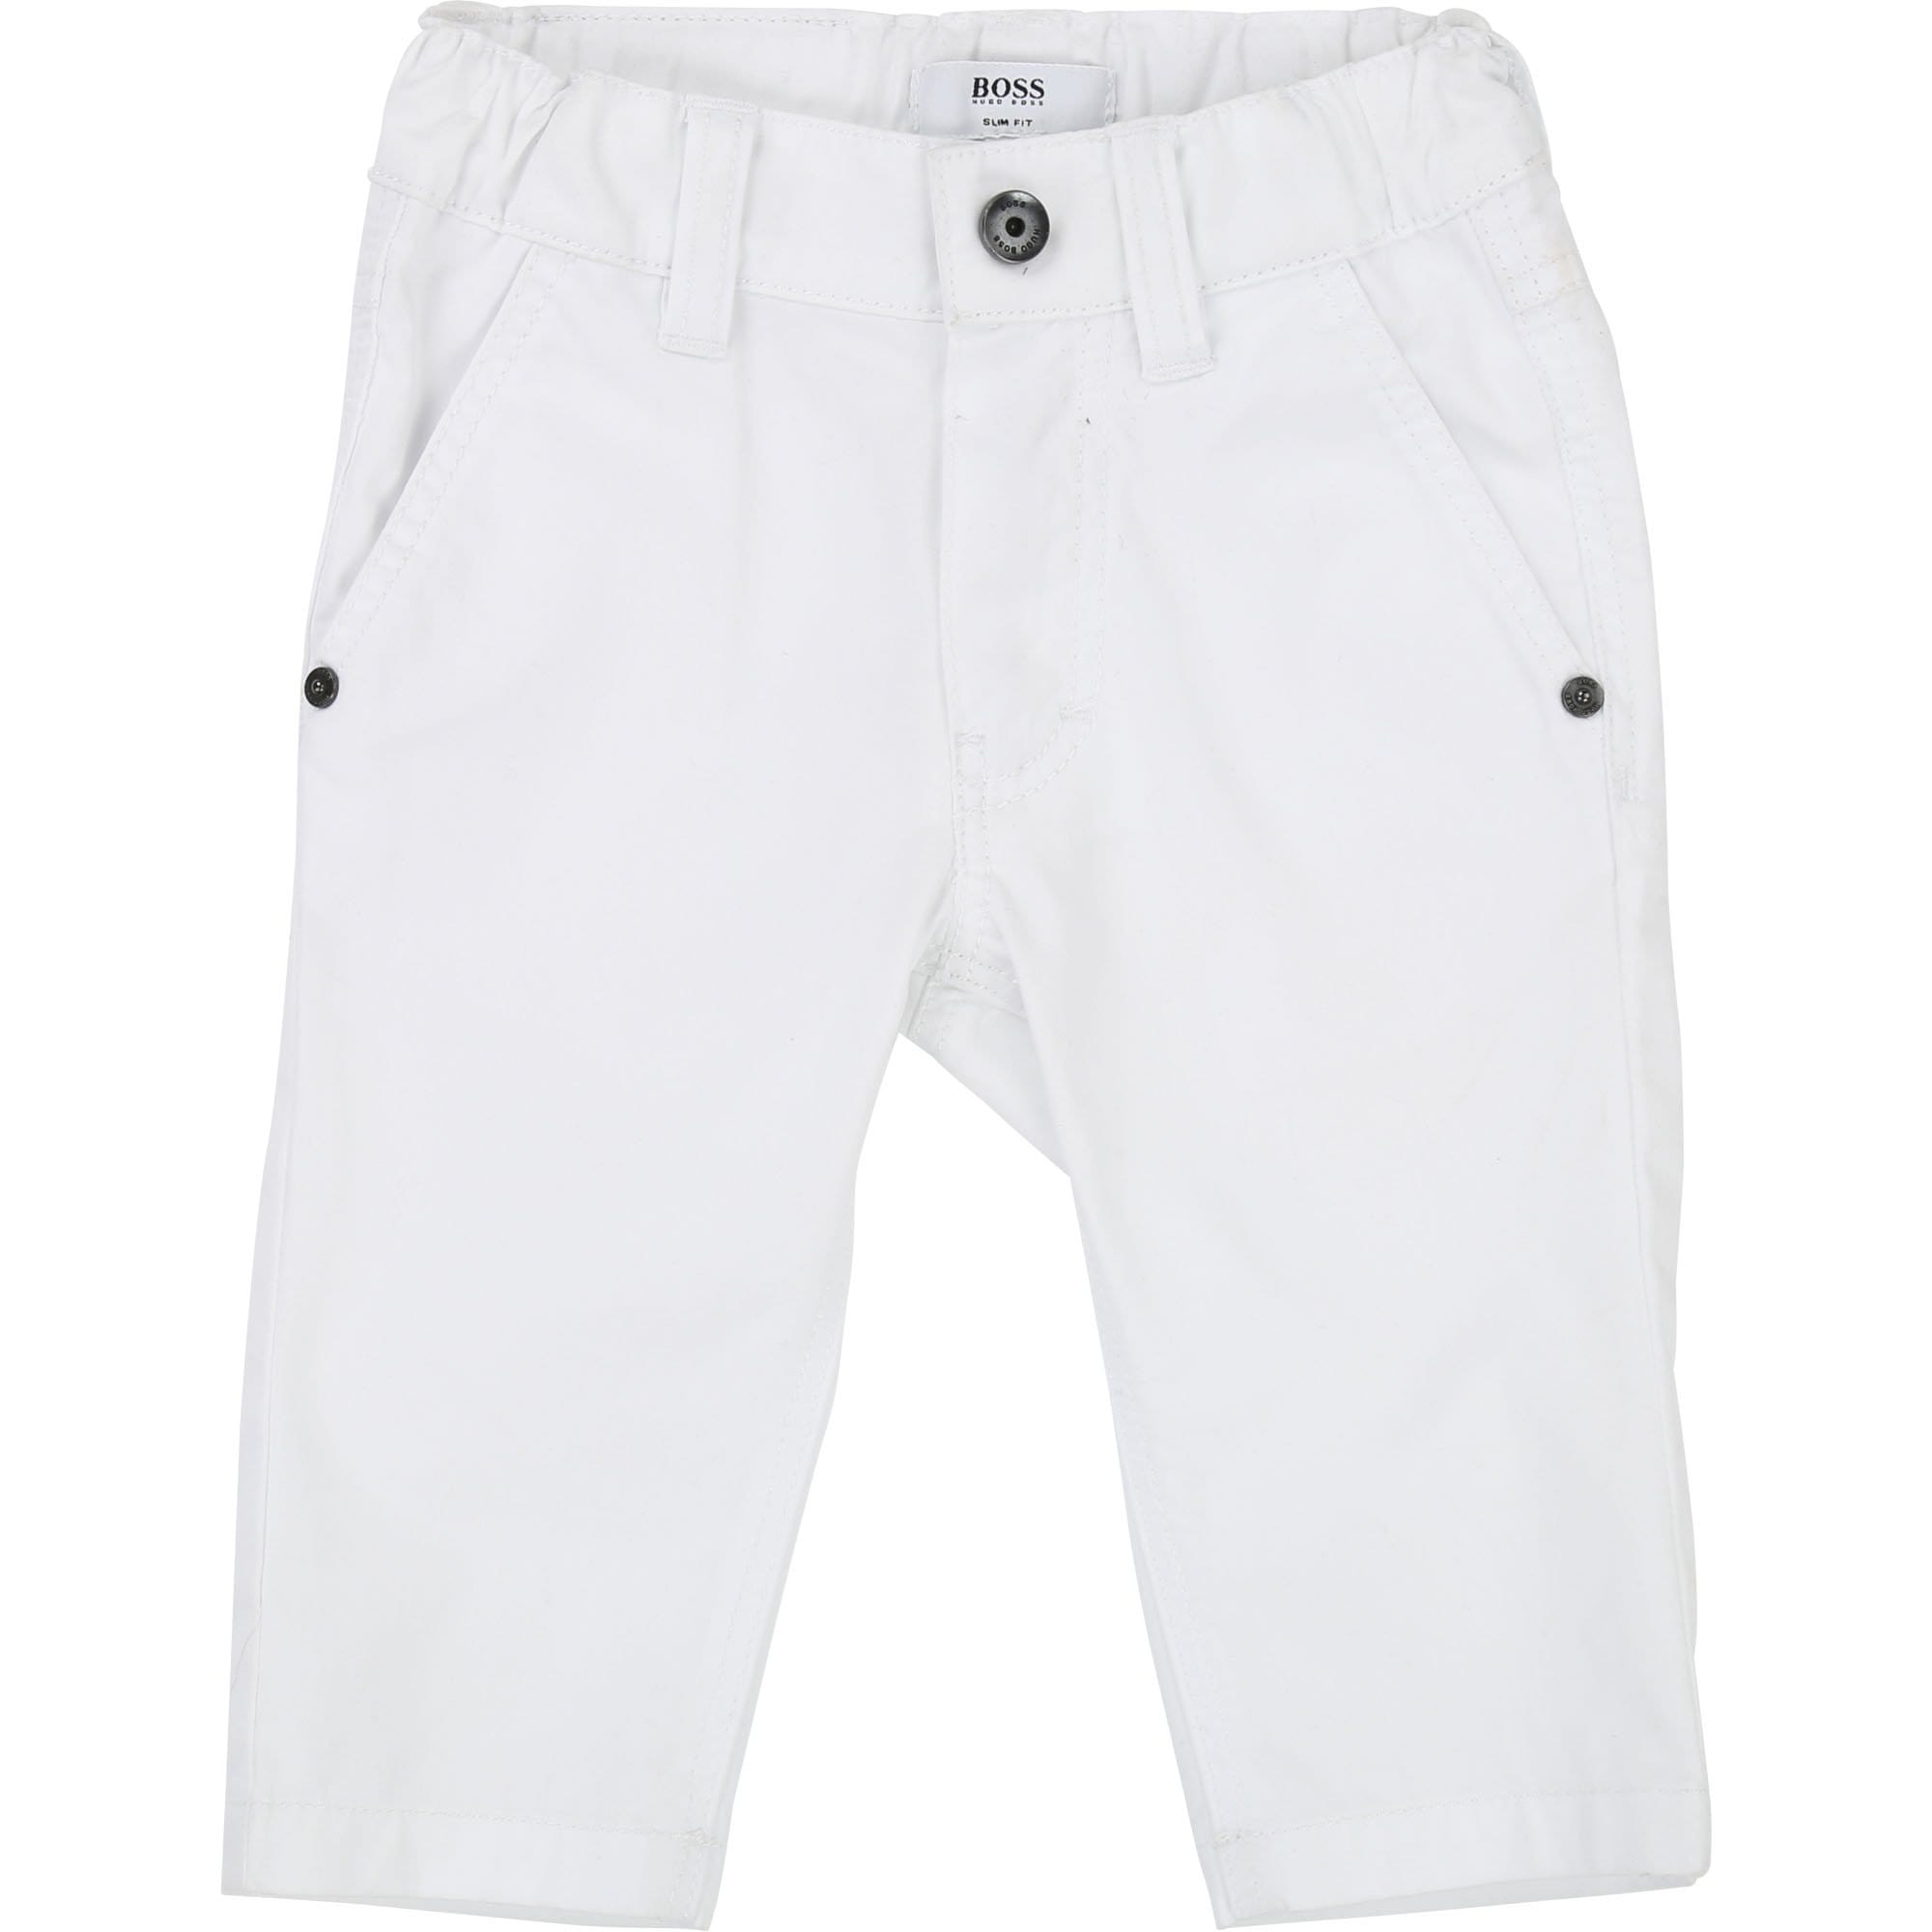 Hugo Boss Baby Chino Pants (4696881168515)